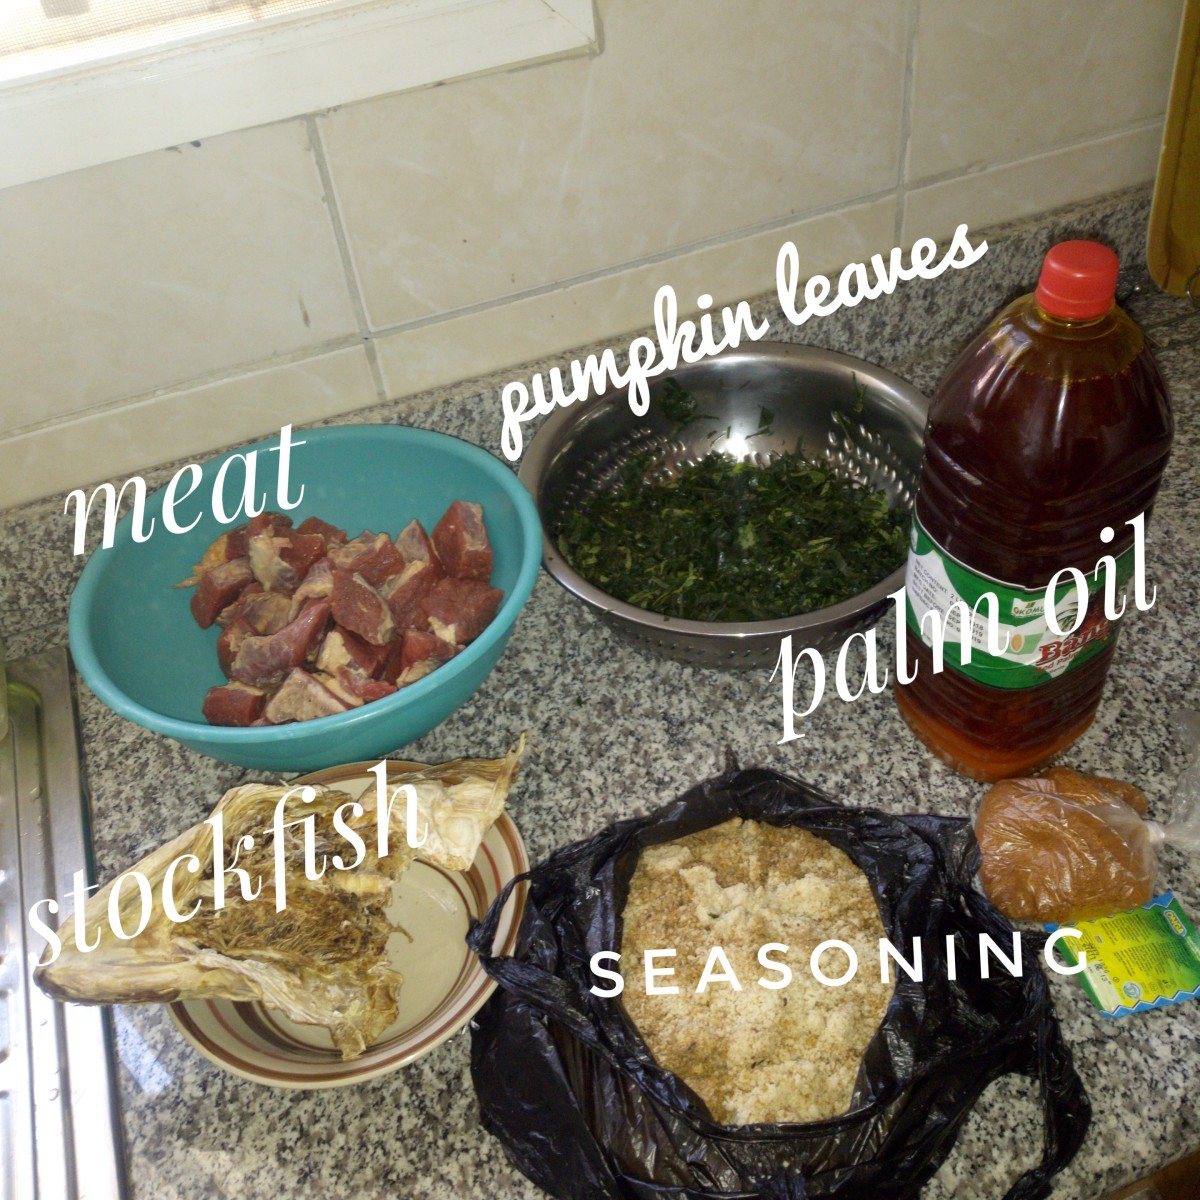 Some of the ingredients.